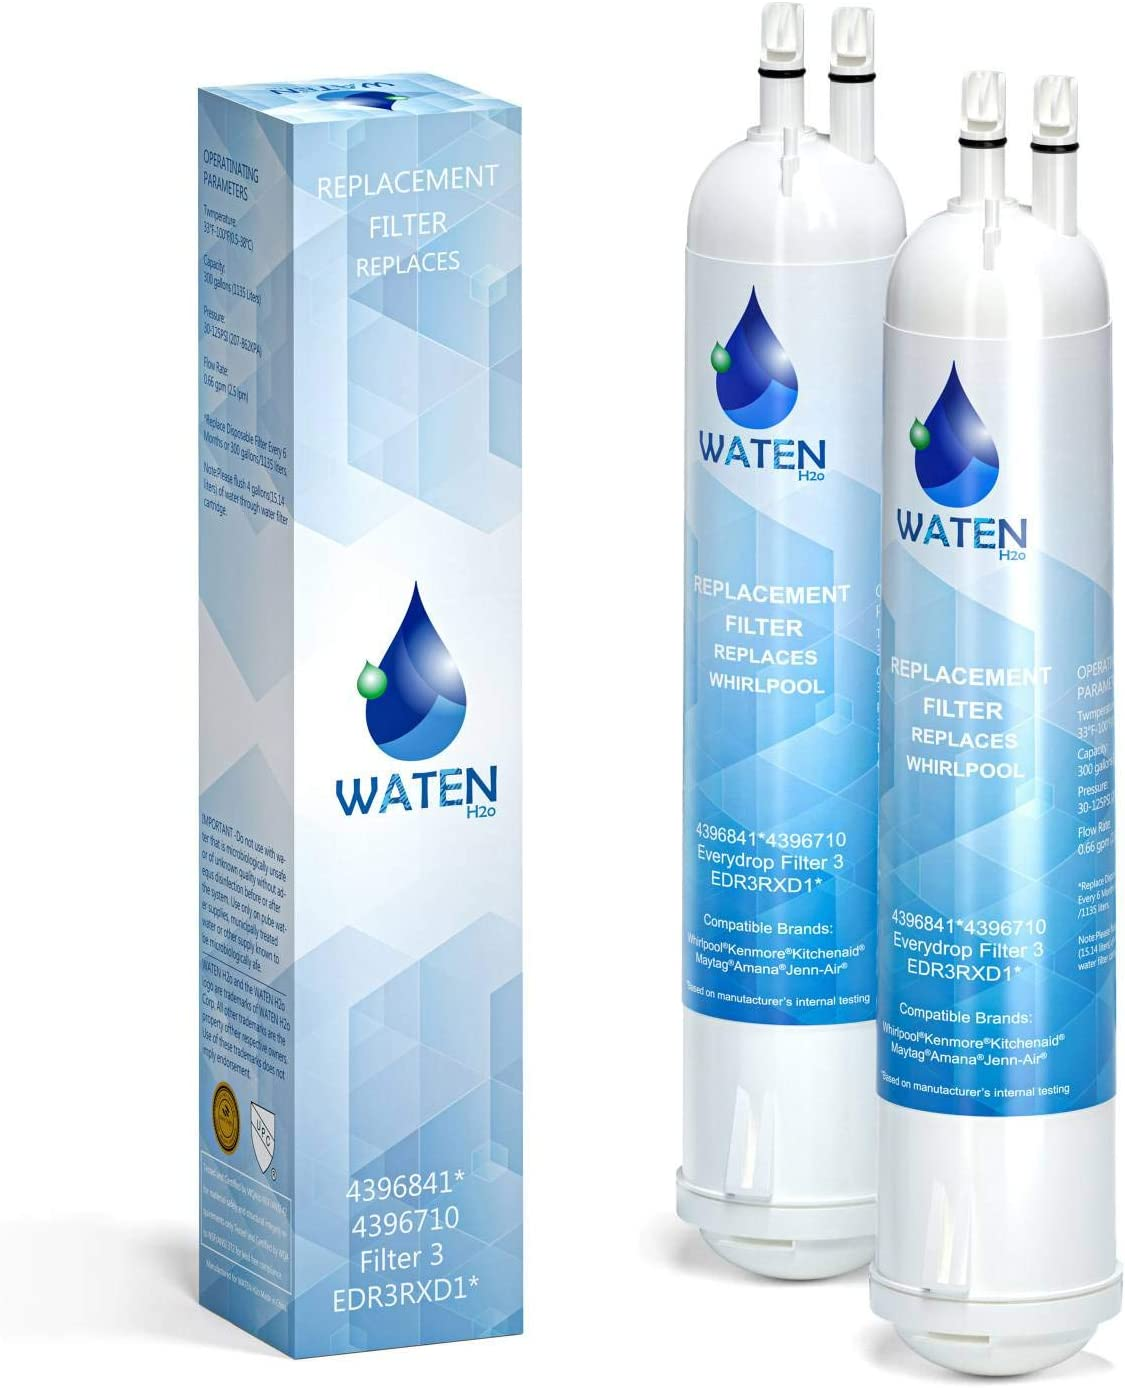 WATEN H2O 4396841 EDR3RXD1 Water Filter Replacement, Compatible with 4396710 Refrigerator Cap Water Filter 3 Kenmore 9083, 9030 2-Packs